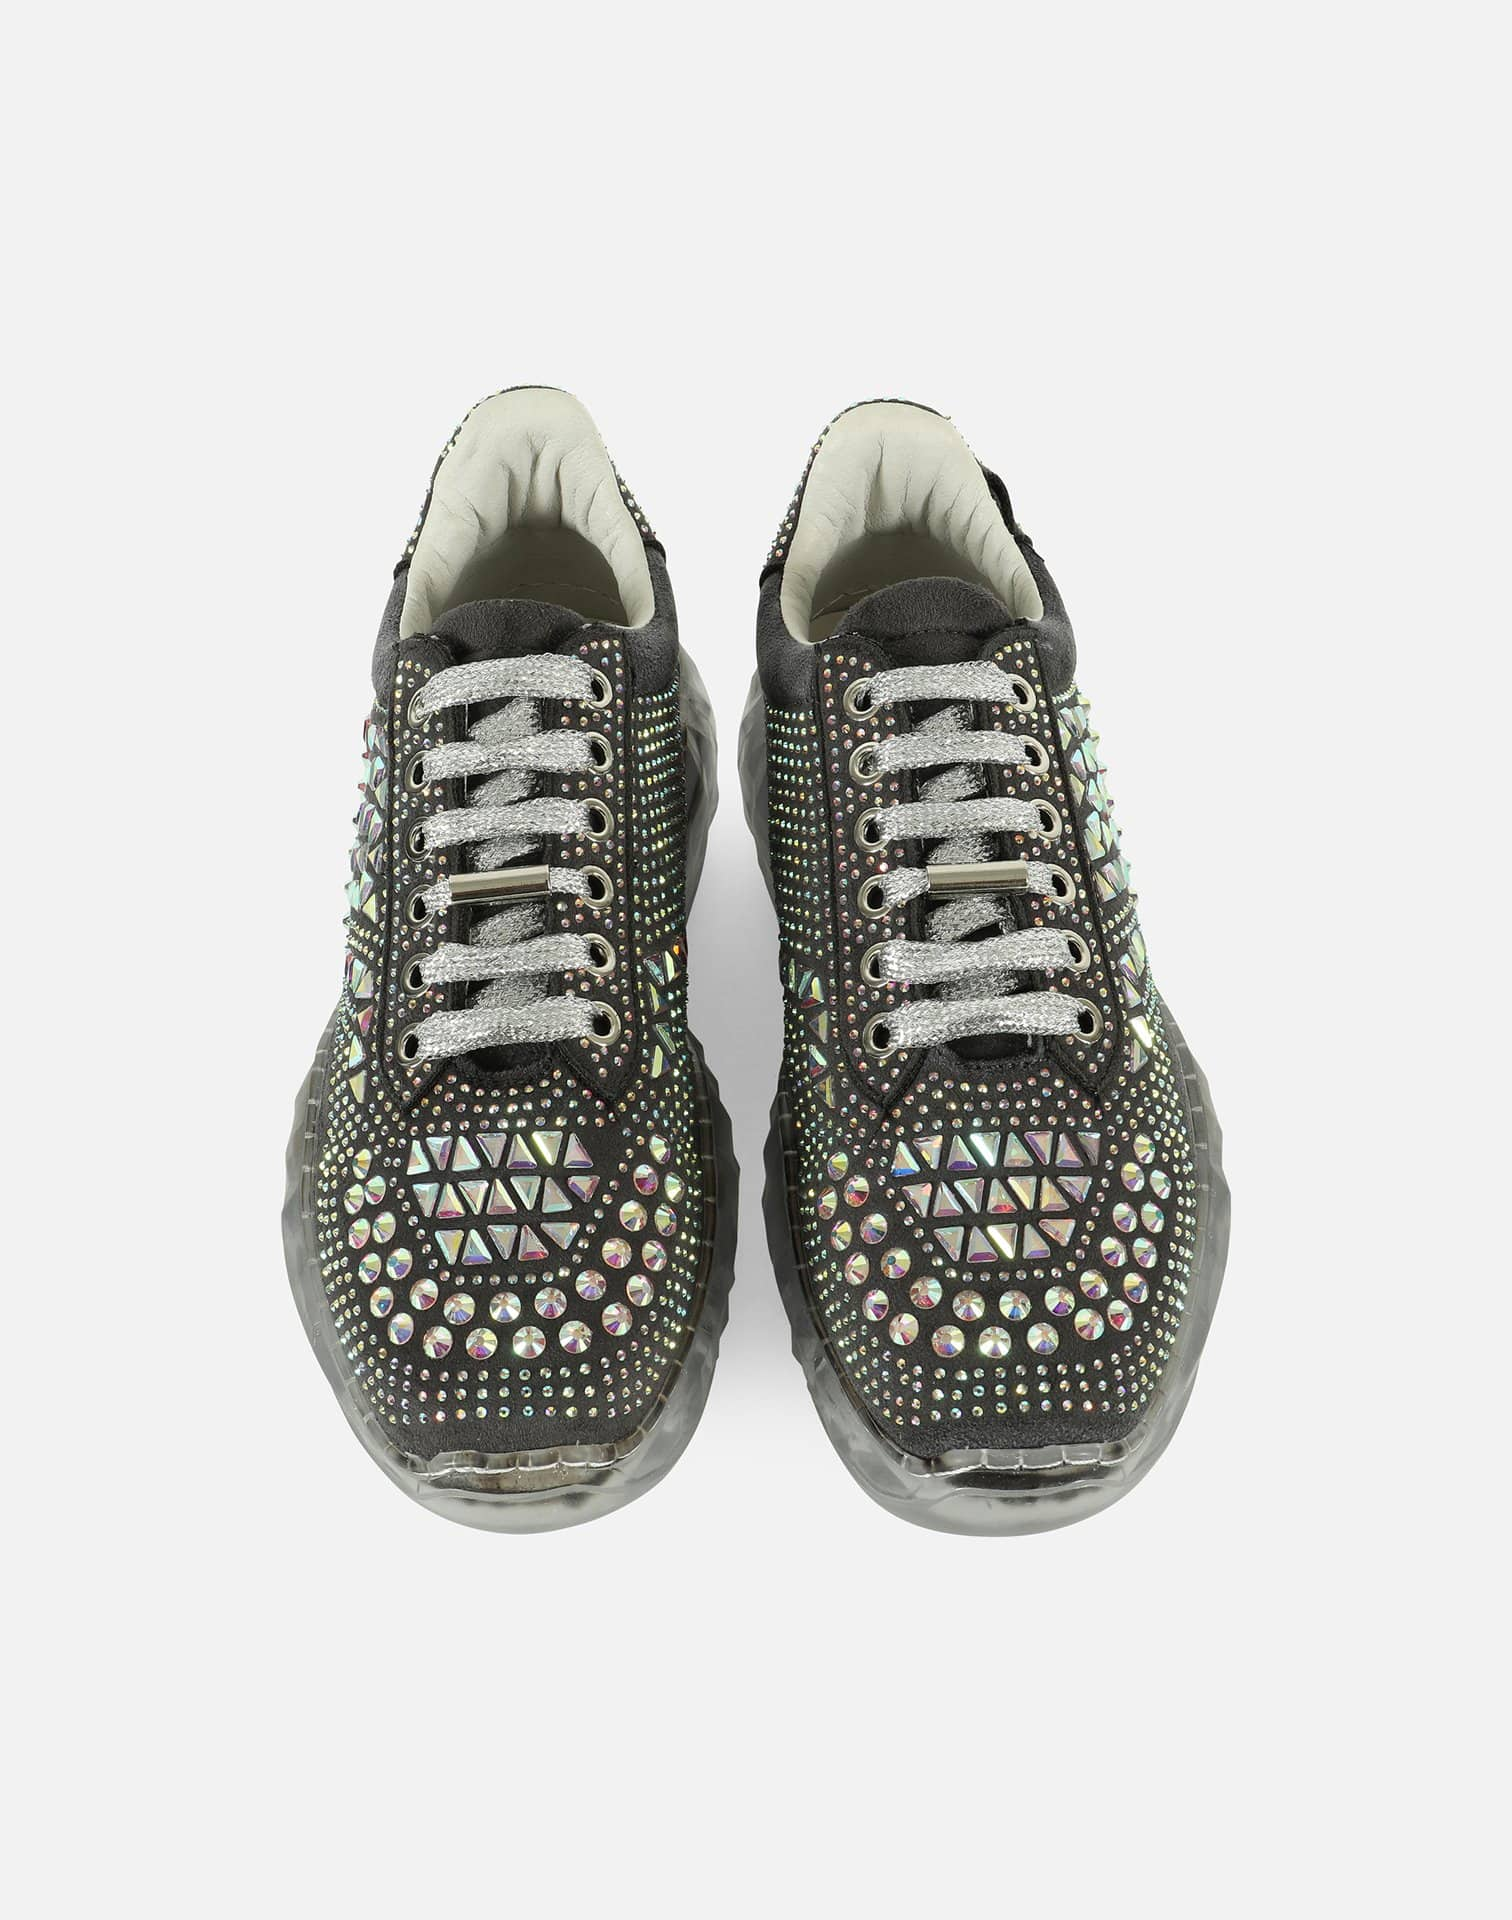 4Ever Women's Crystal Rhinestone Platforms